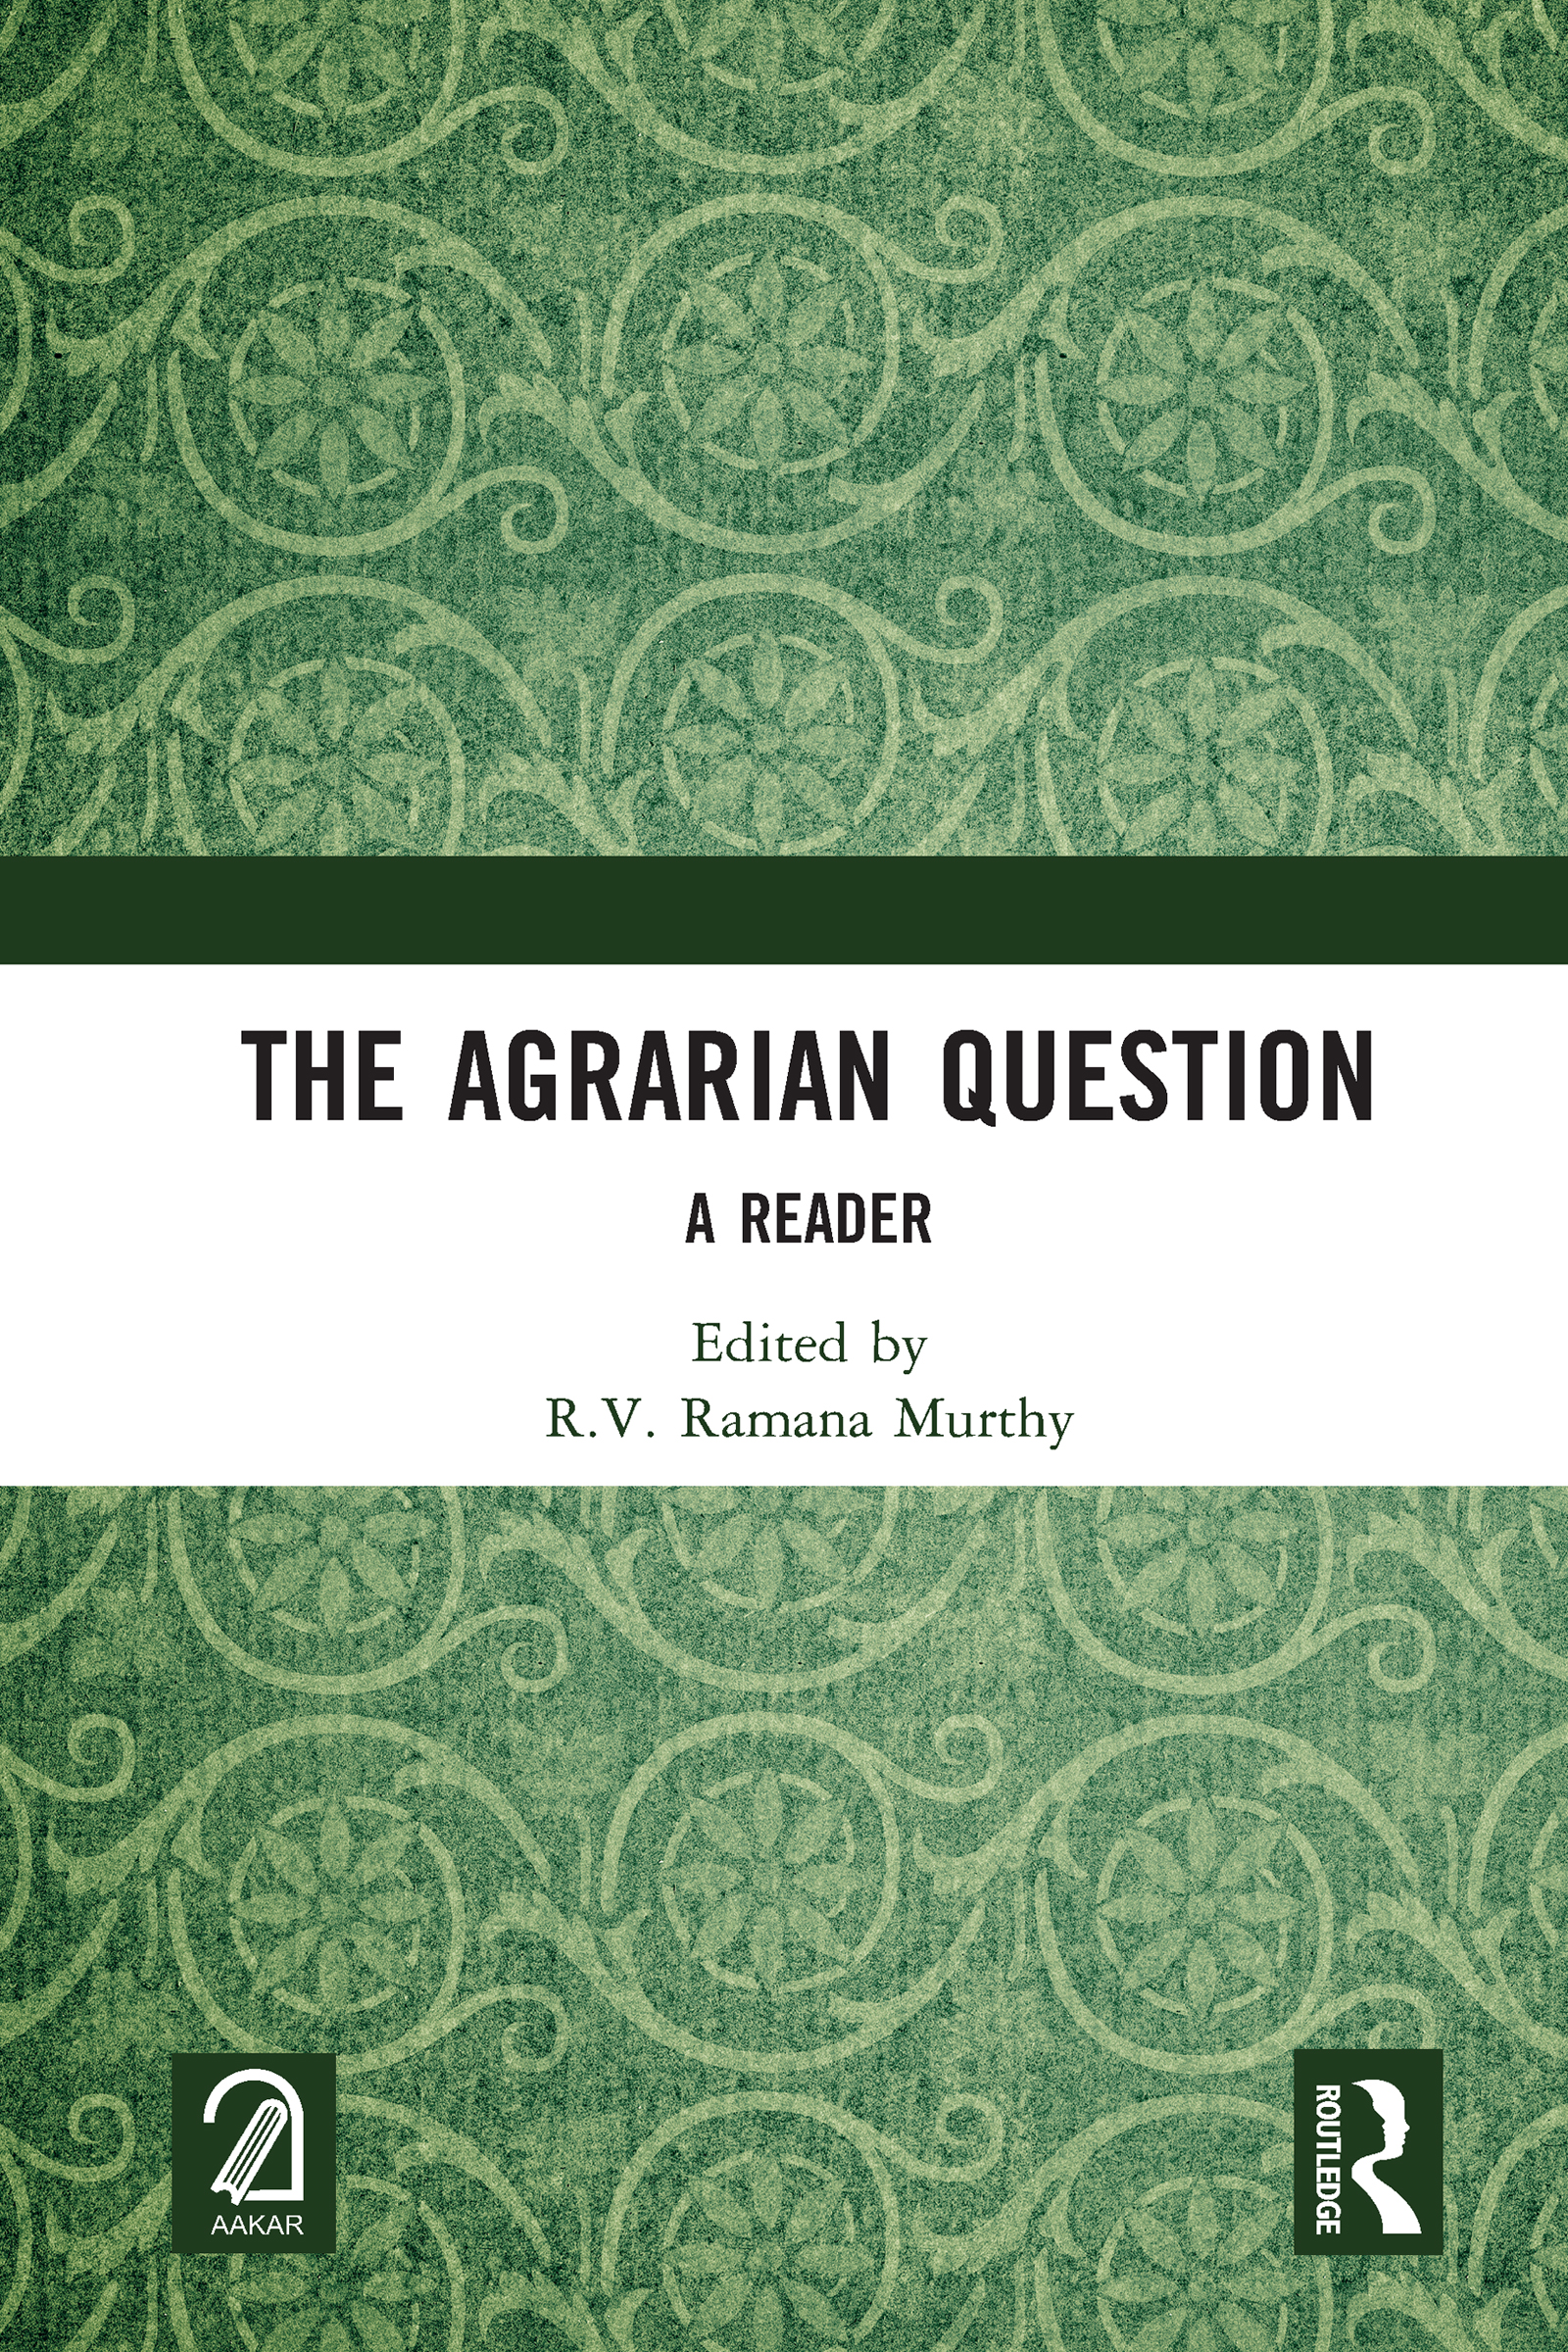 The Agrarian Question